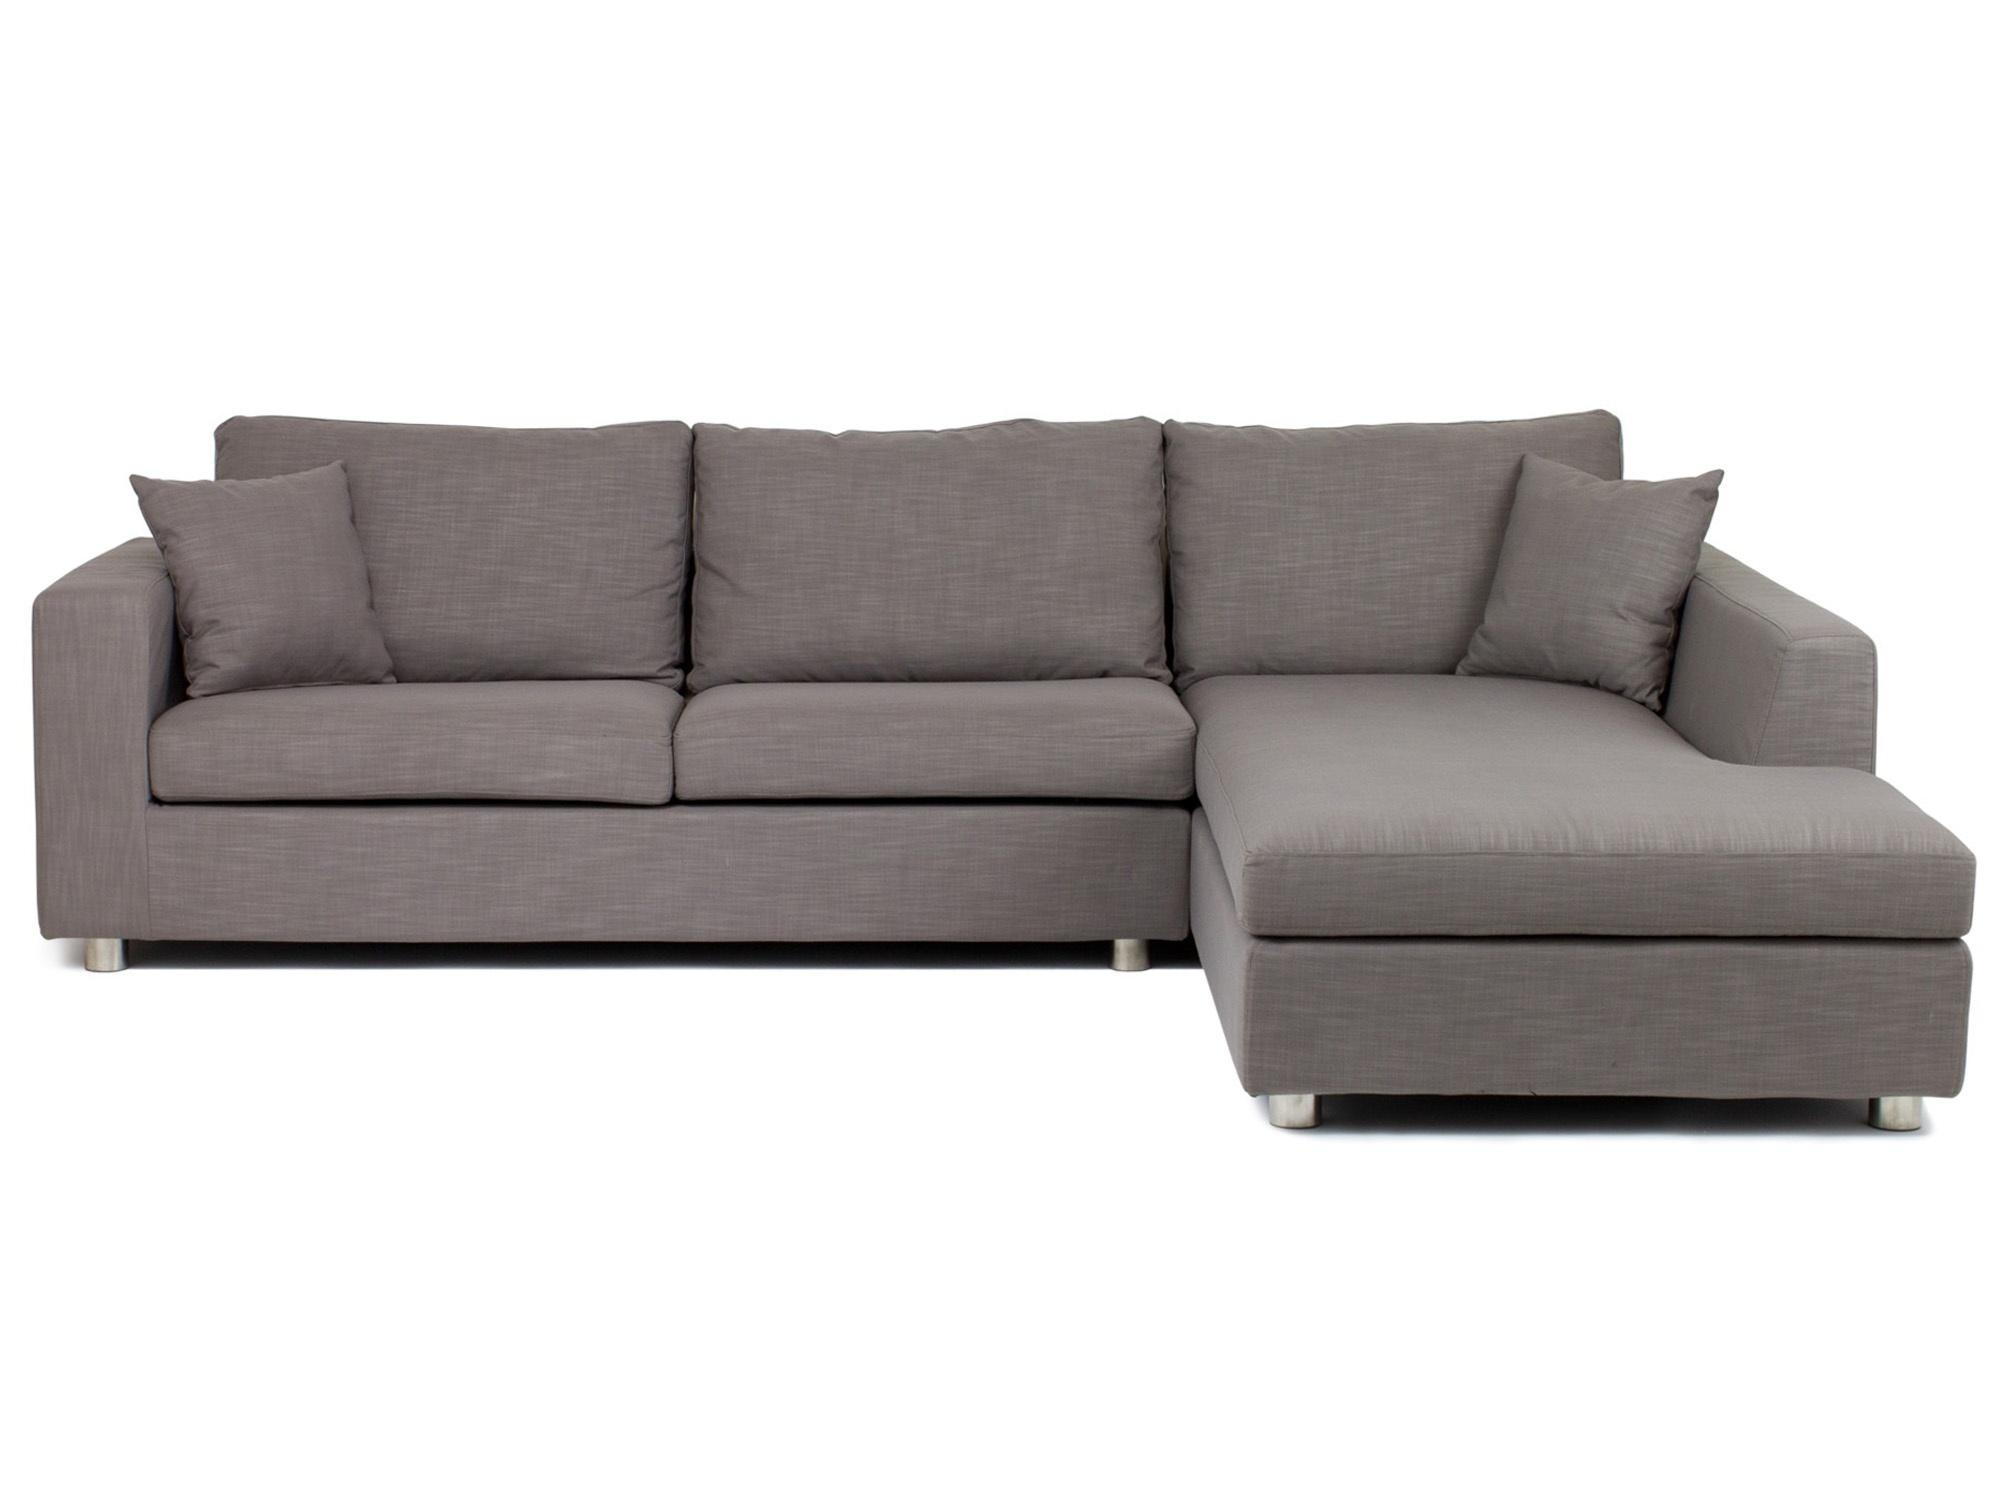 Sofas: Chaise Sofa Bed | Corner Lounge With Sofa Bed & Chaise Throughout Cheap Corner Sofa Bed (View 7 of 20)